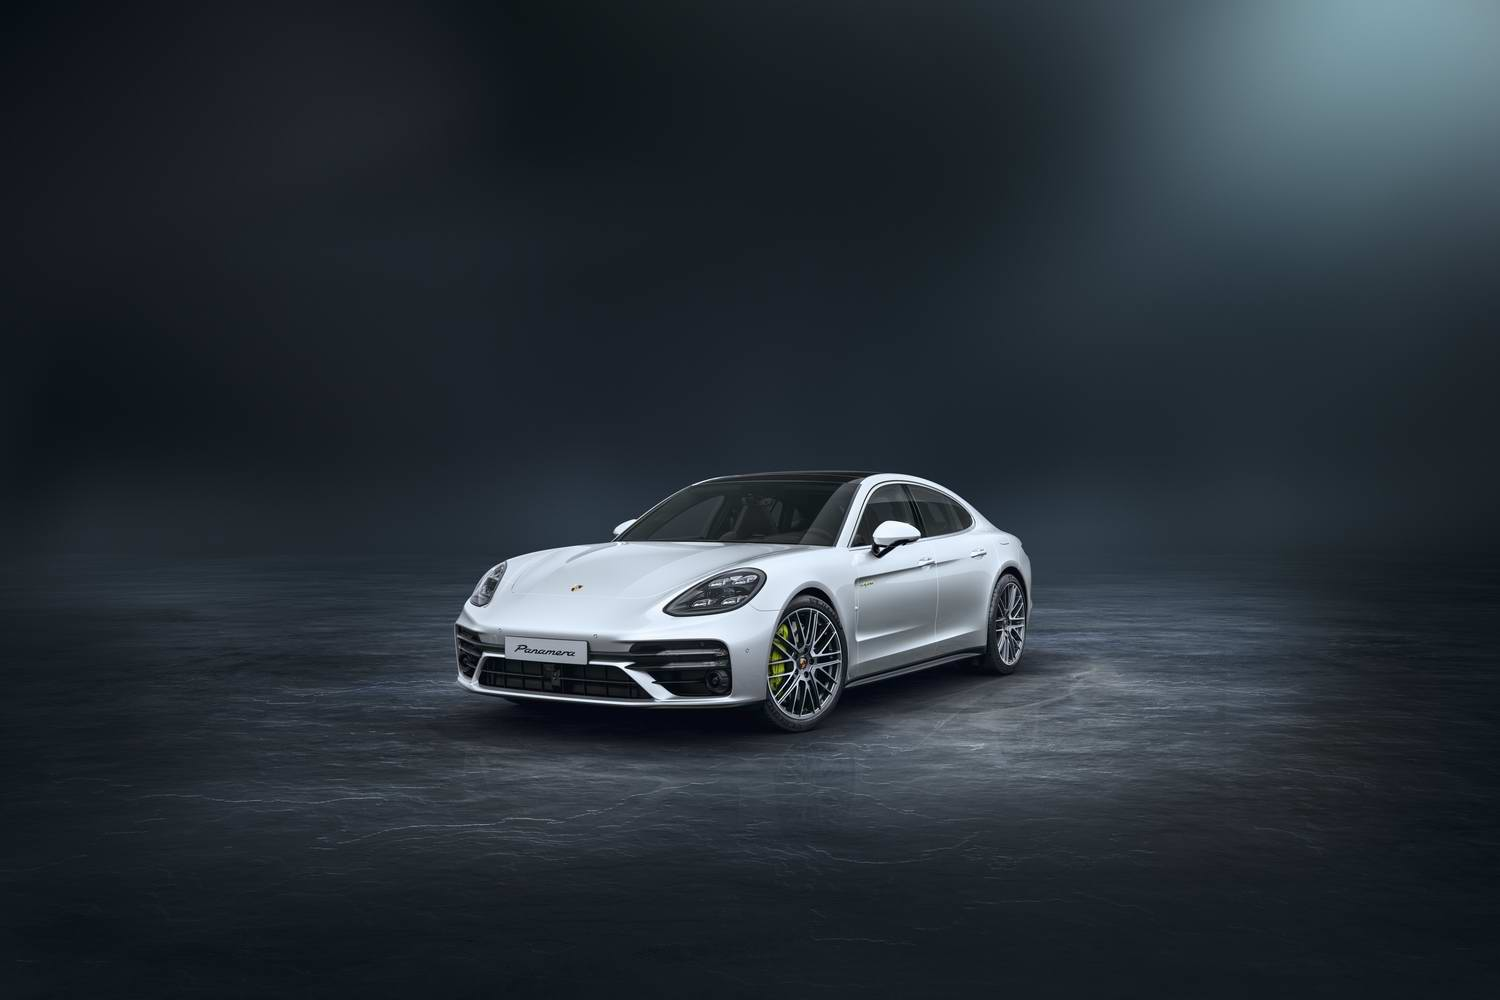 Car News | Porsche reveals 700hp hybrid Panamera | CompleteCar.ie